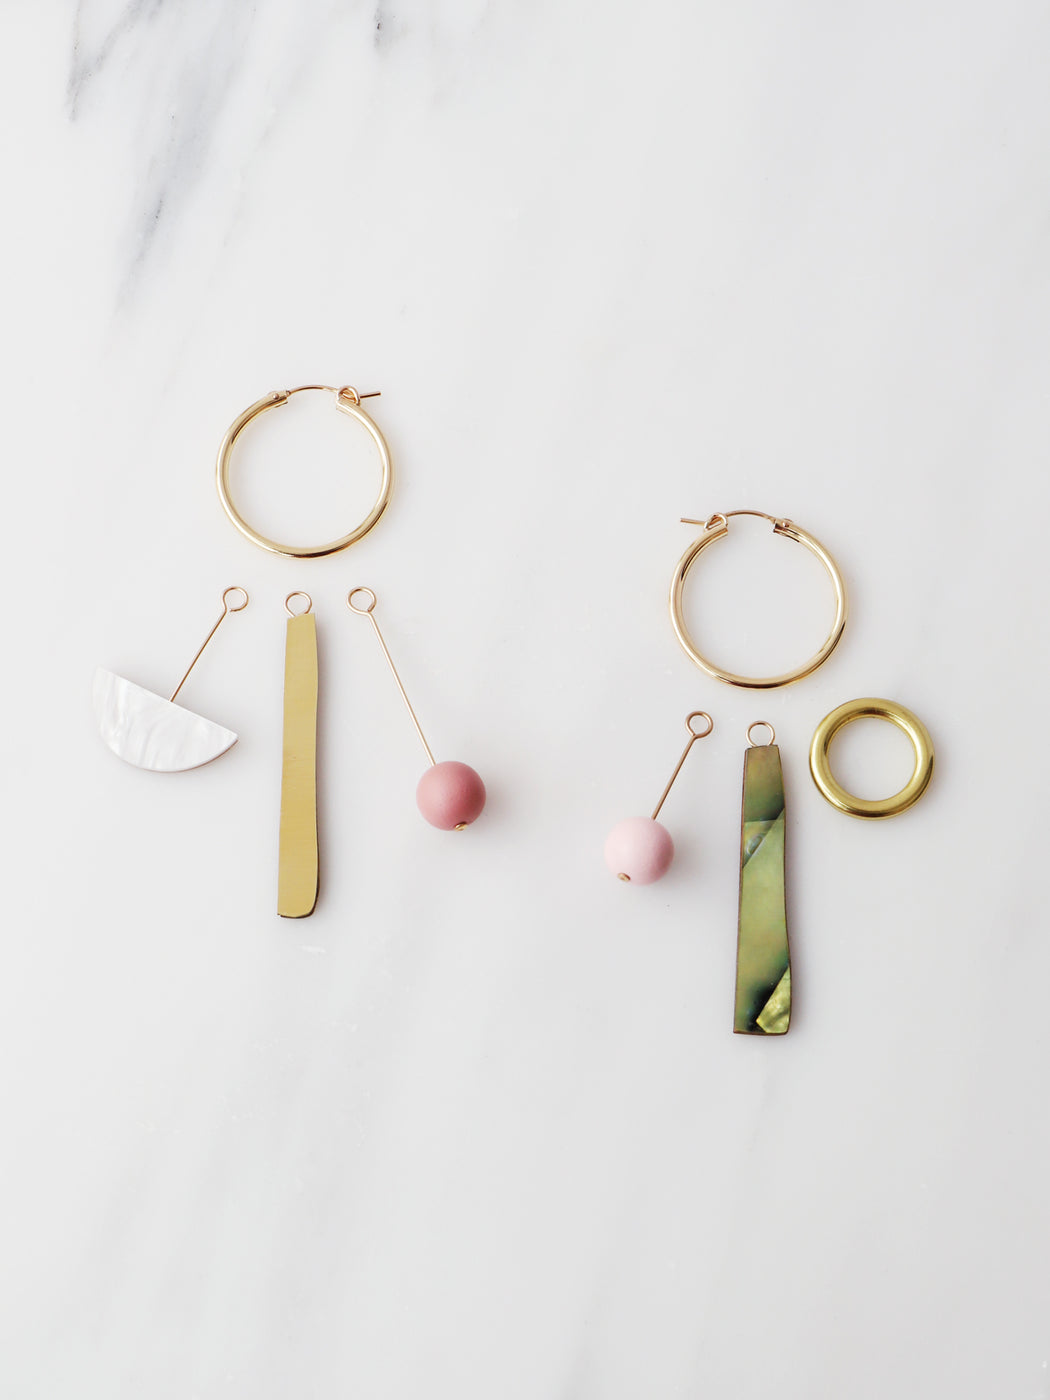 Abstract Charm Hoops in Olive/White. Original jewellery handmade in the U.K. by Wolf & Moon.